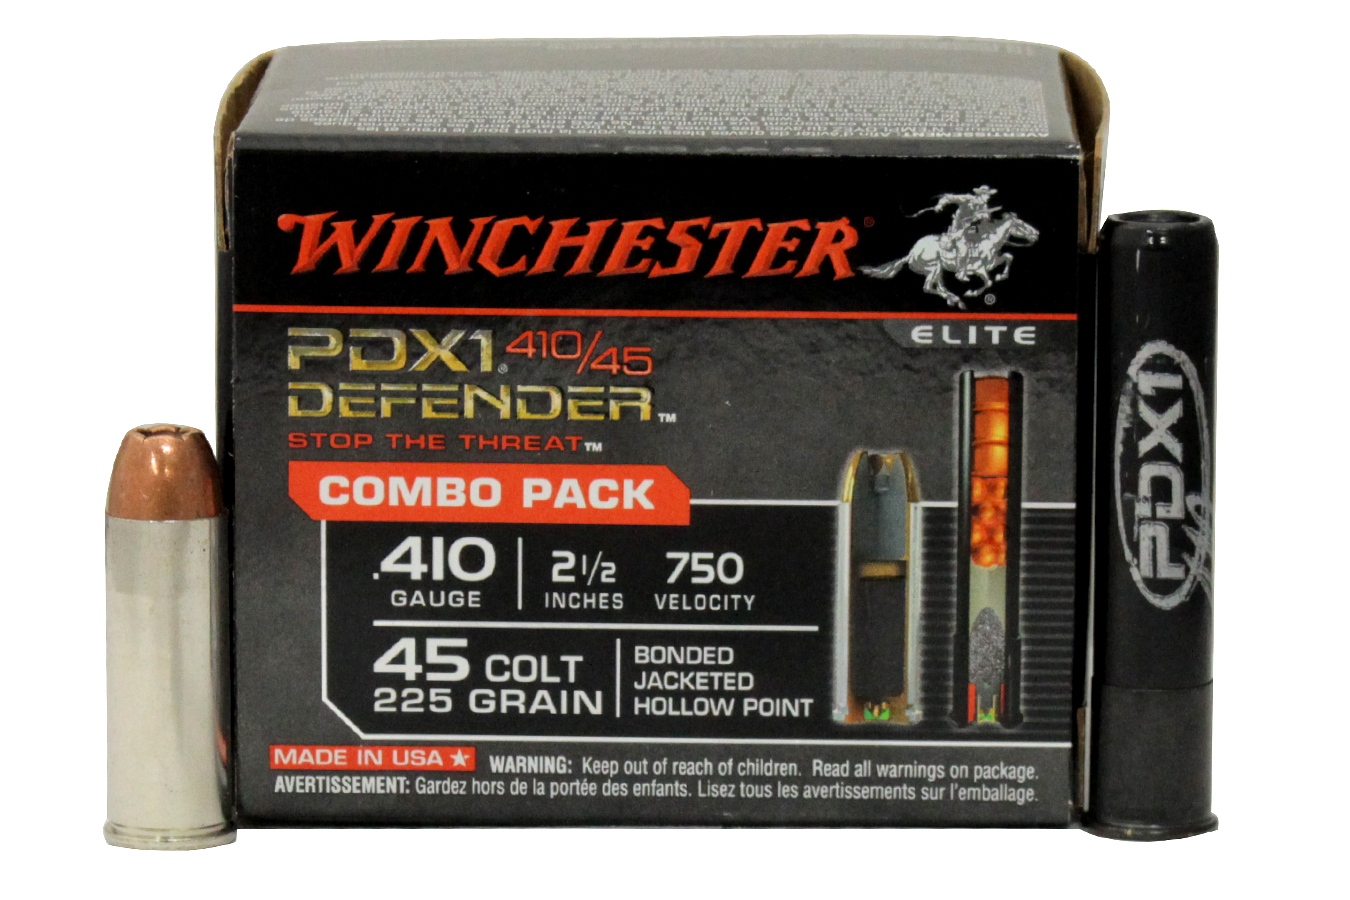 45 COLT 410/45 COMBO PACK